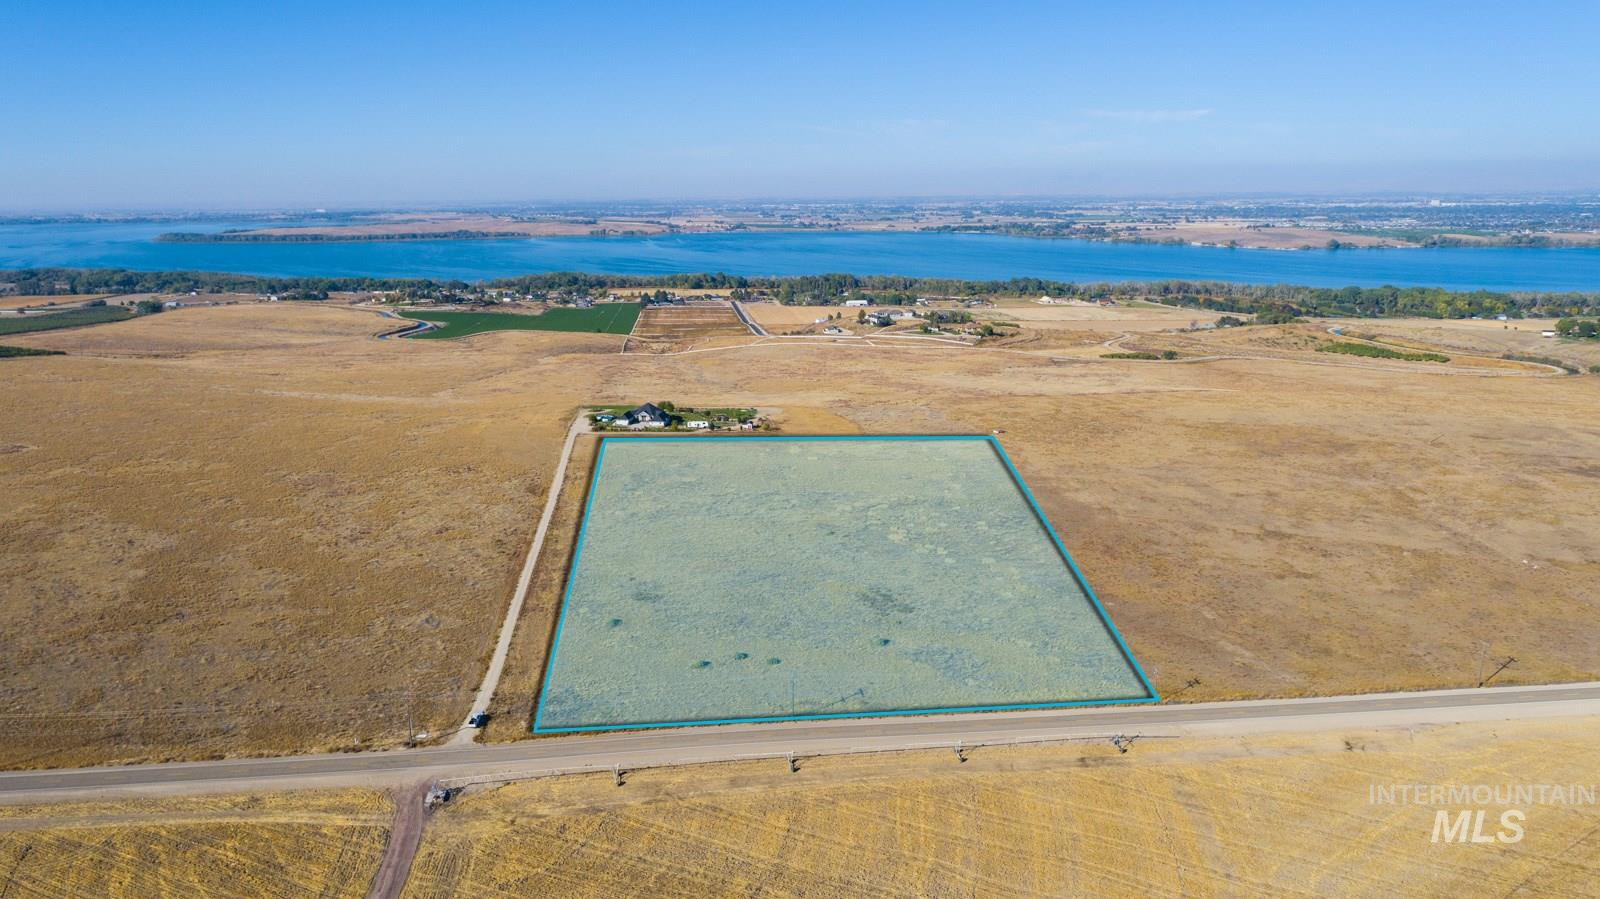 TBD Lewis Lane, Nampa, Idaho 83686, Land For Sale, Price $989,900, 98783276